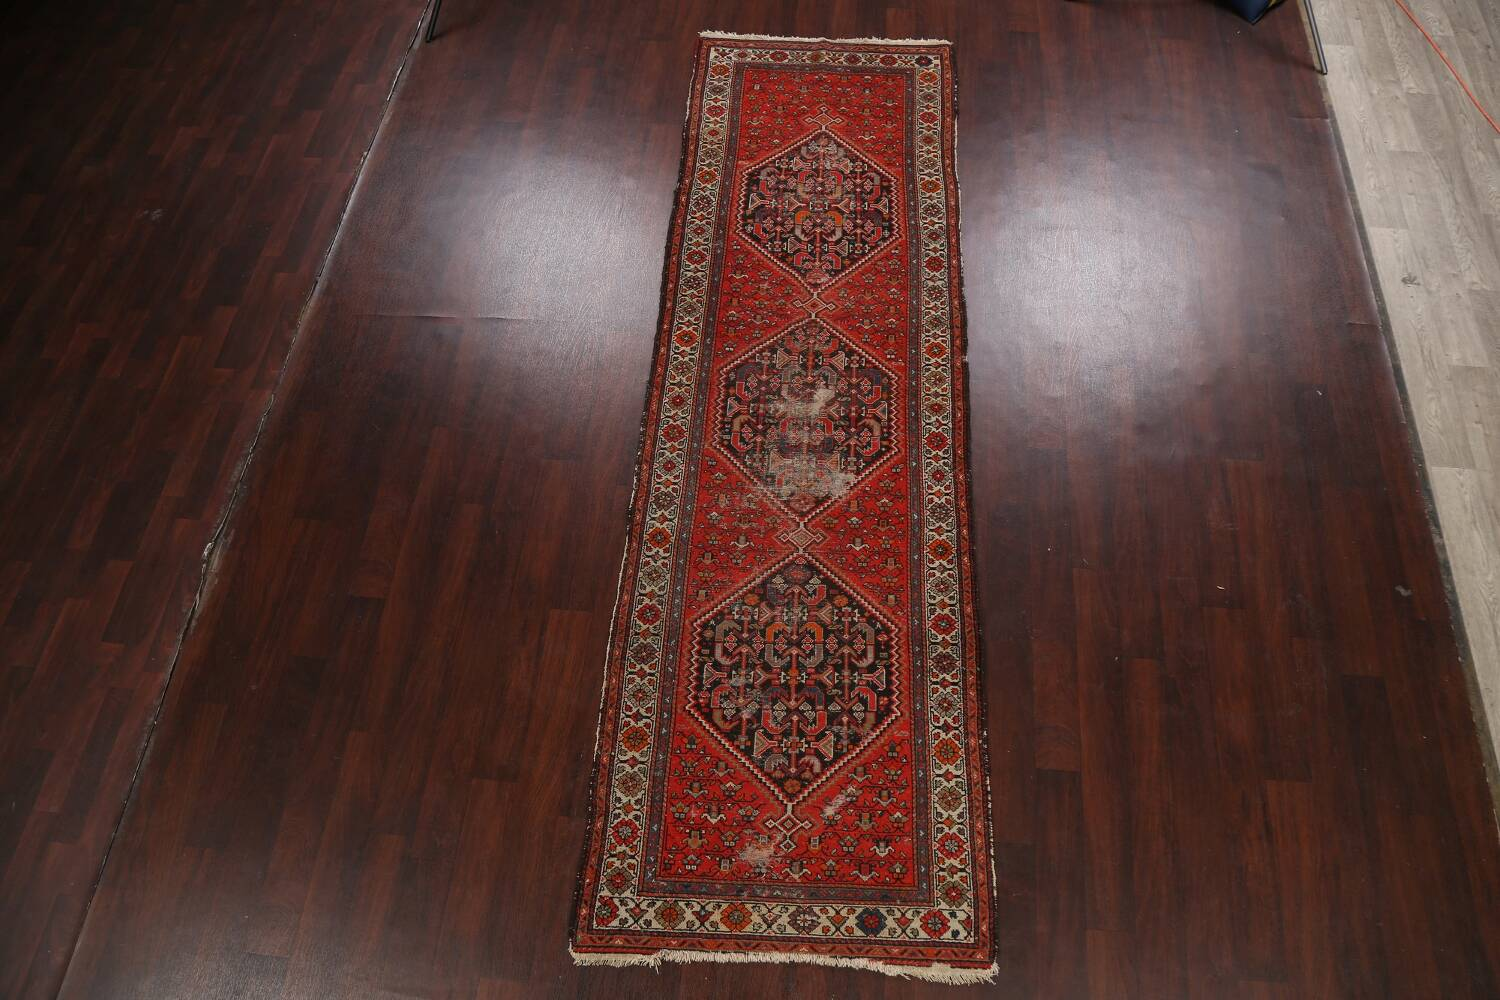 Antique Vegetable Dye Malayer Persian Runner Rug 3x11 image 14